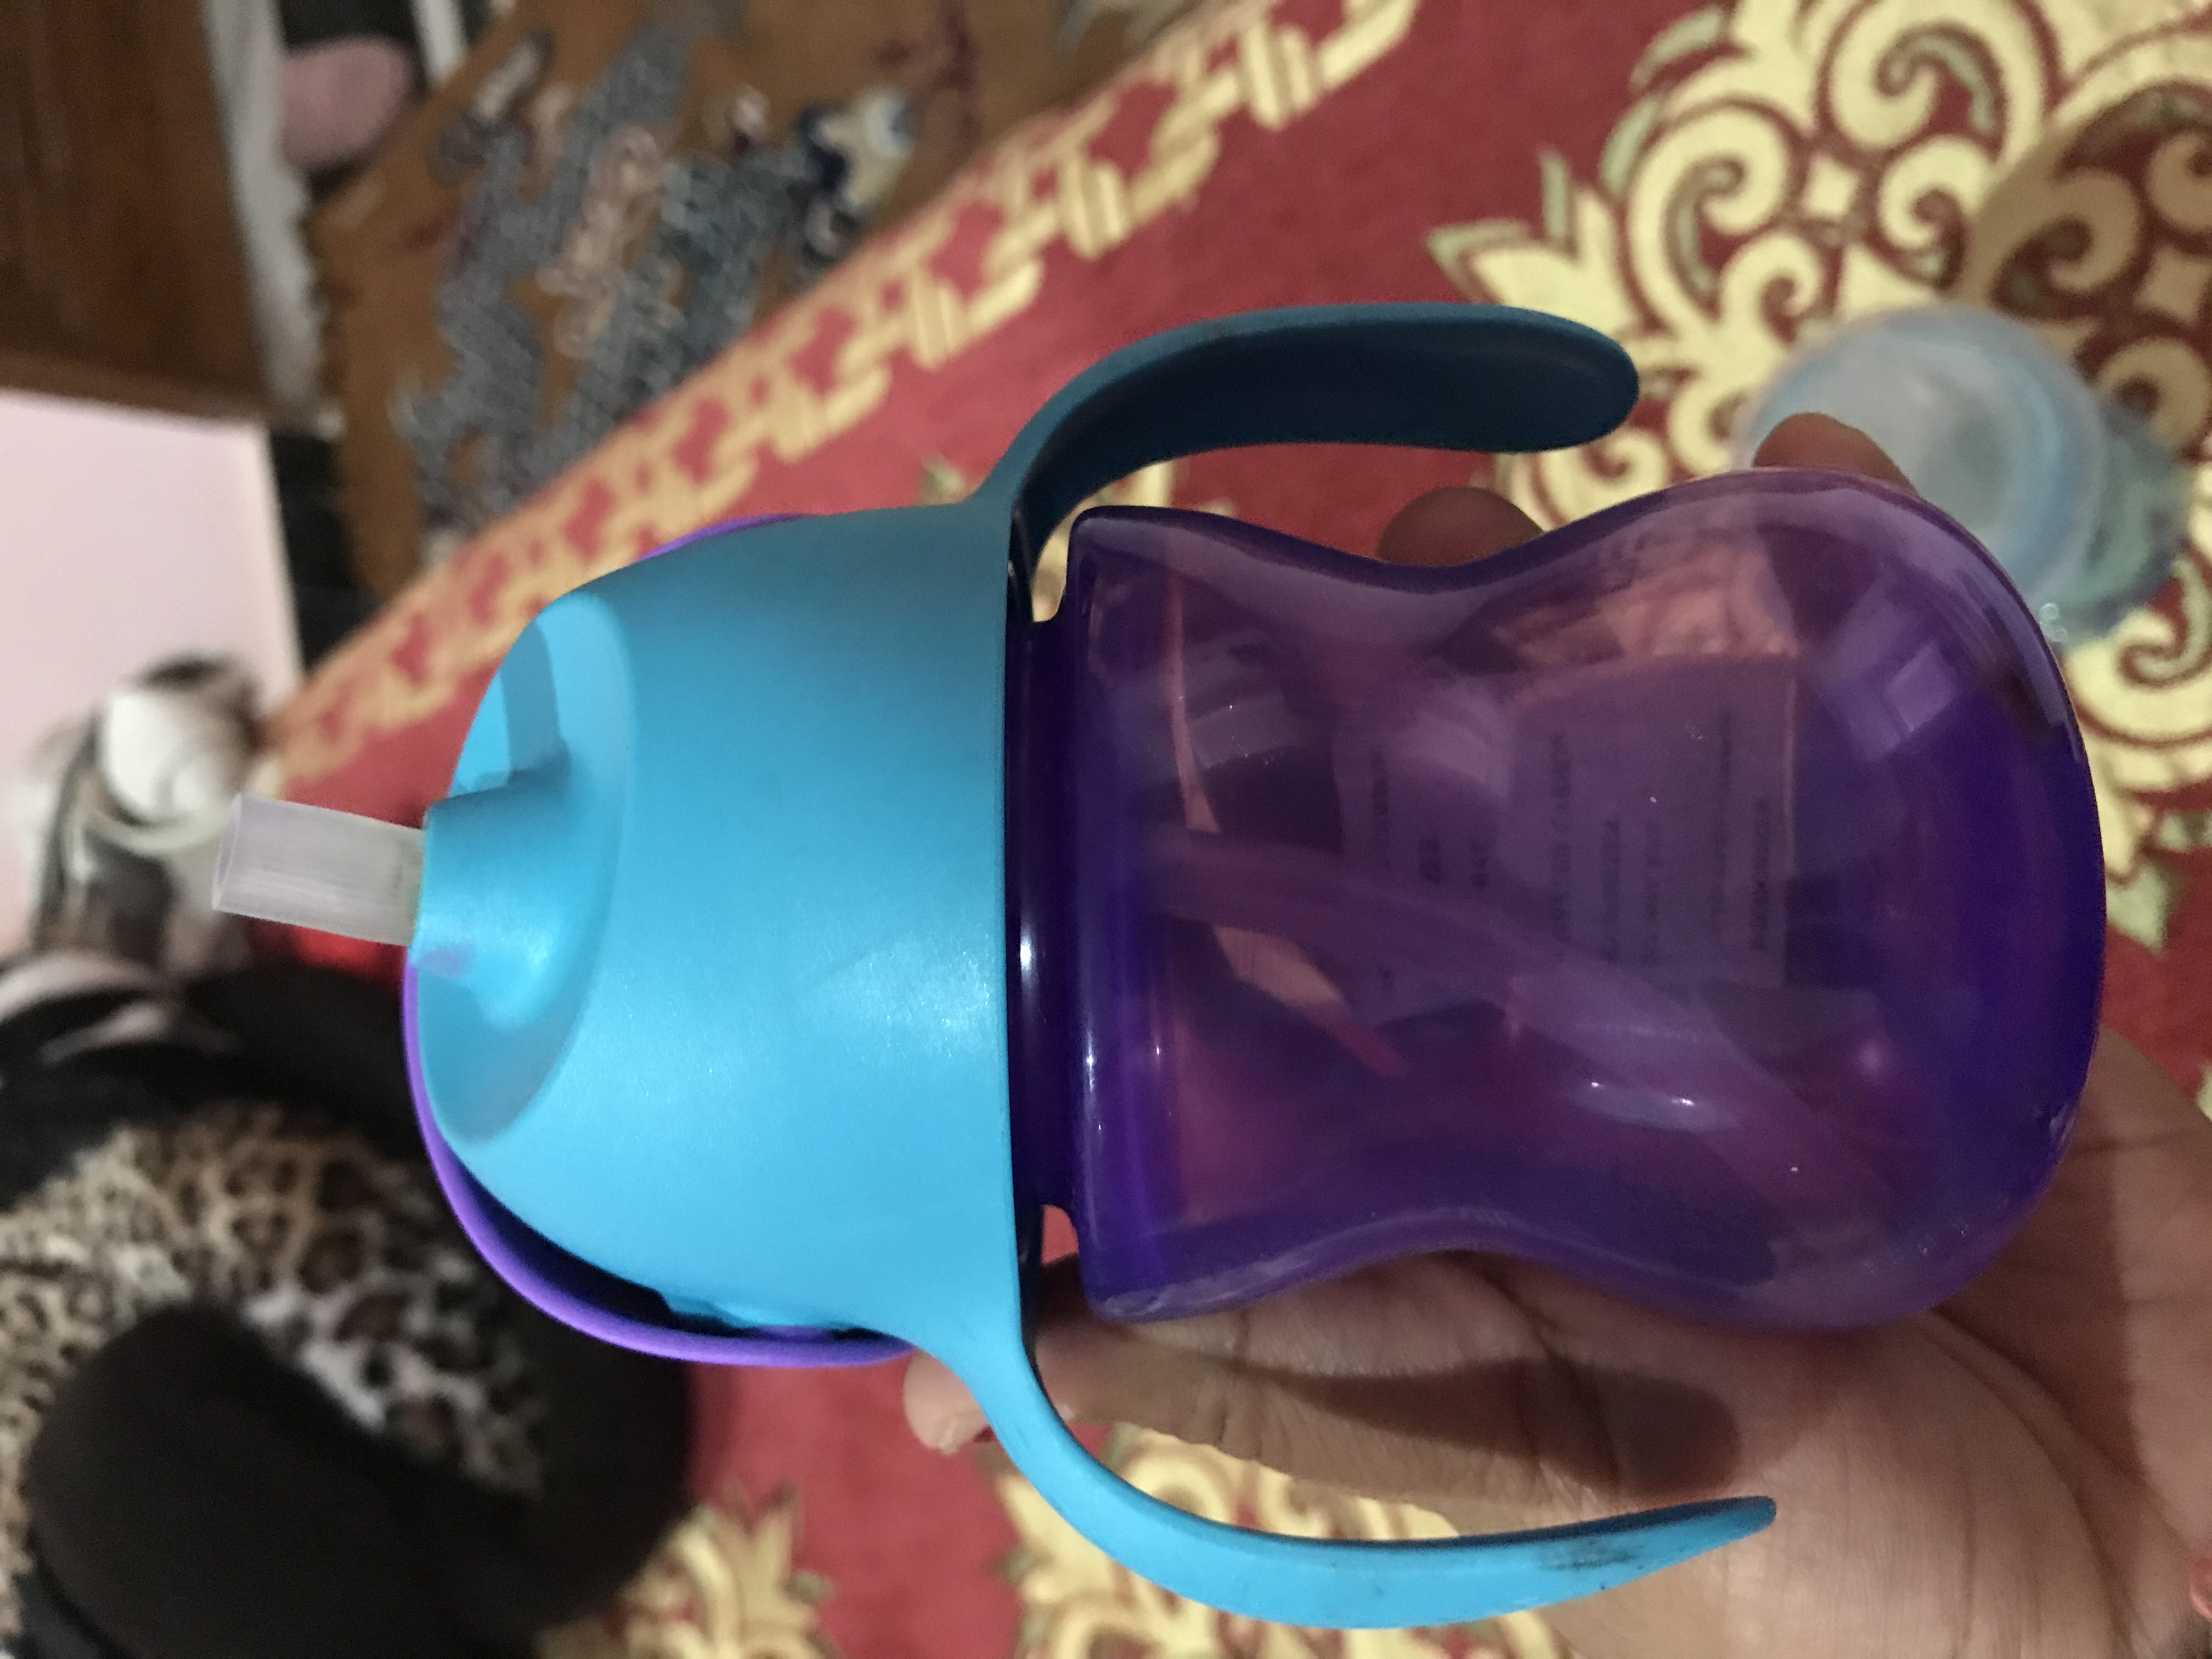 philips avent sipper-Best sipper-By amarjeet